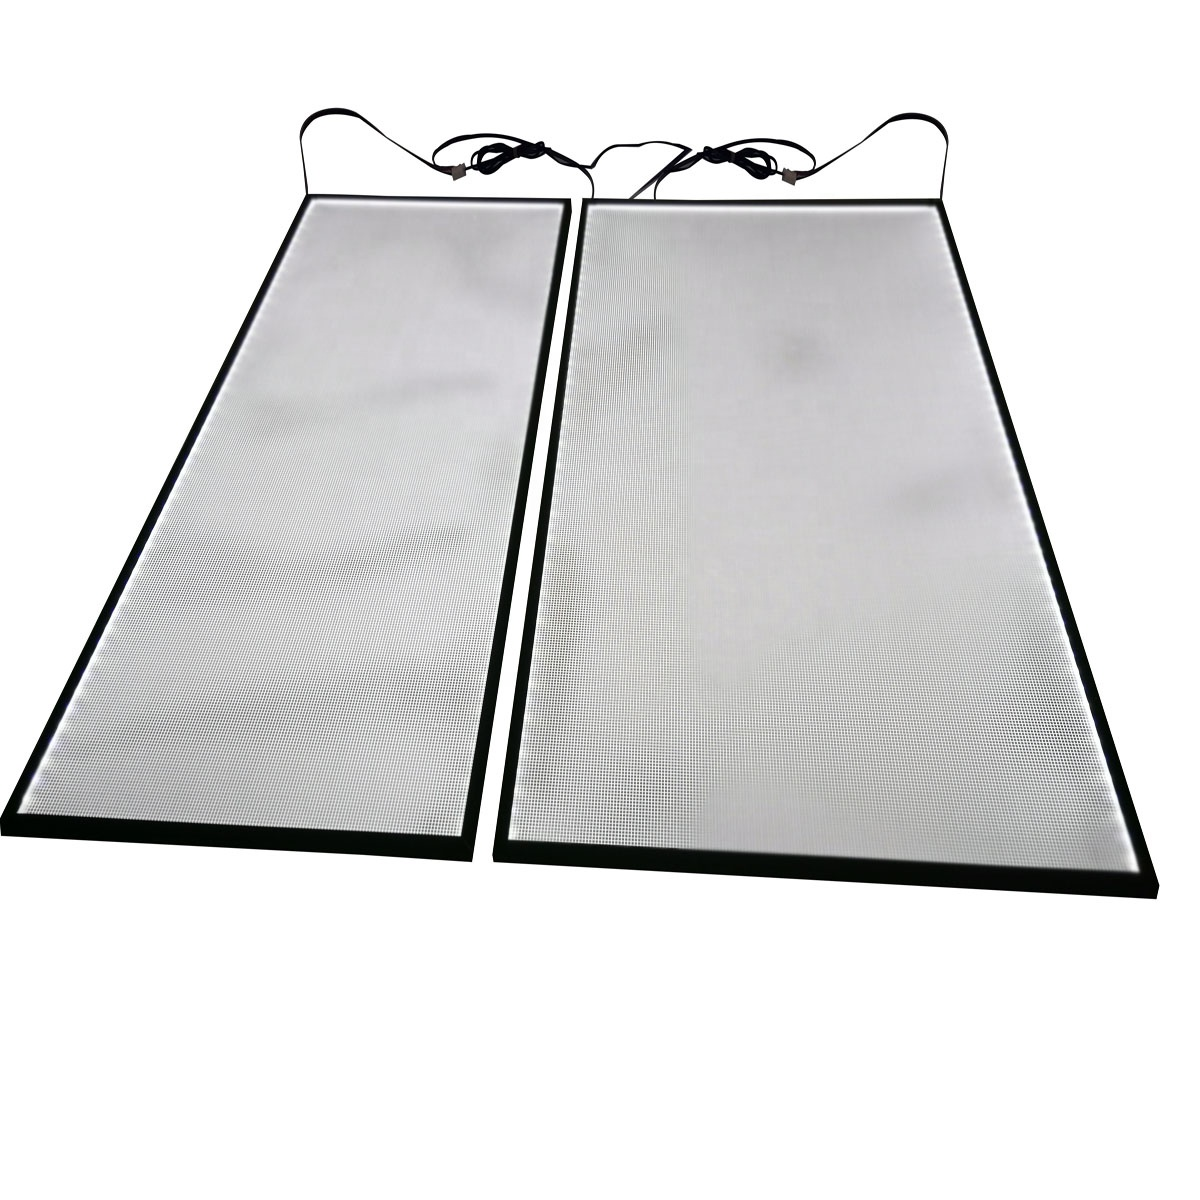 Specific Custom Square Flat Grow Ultra Slim Led Panel Light for Building Decoration